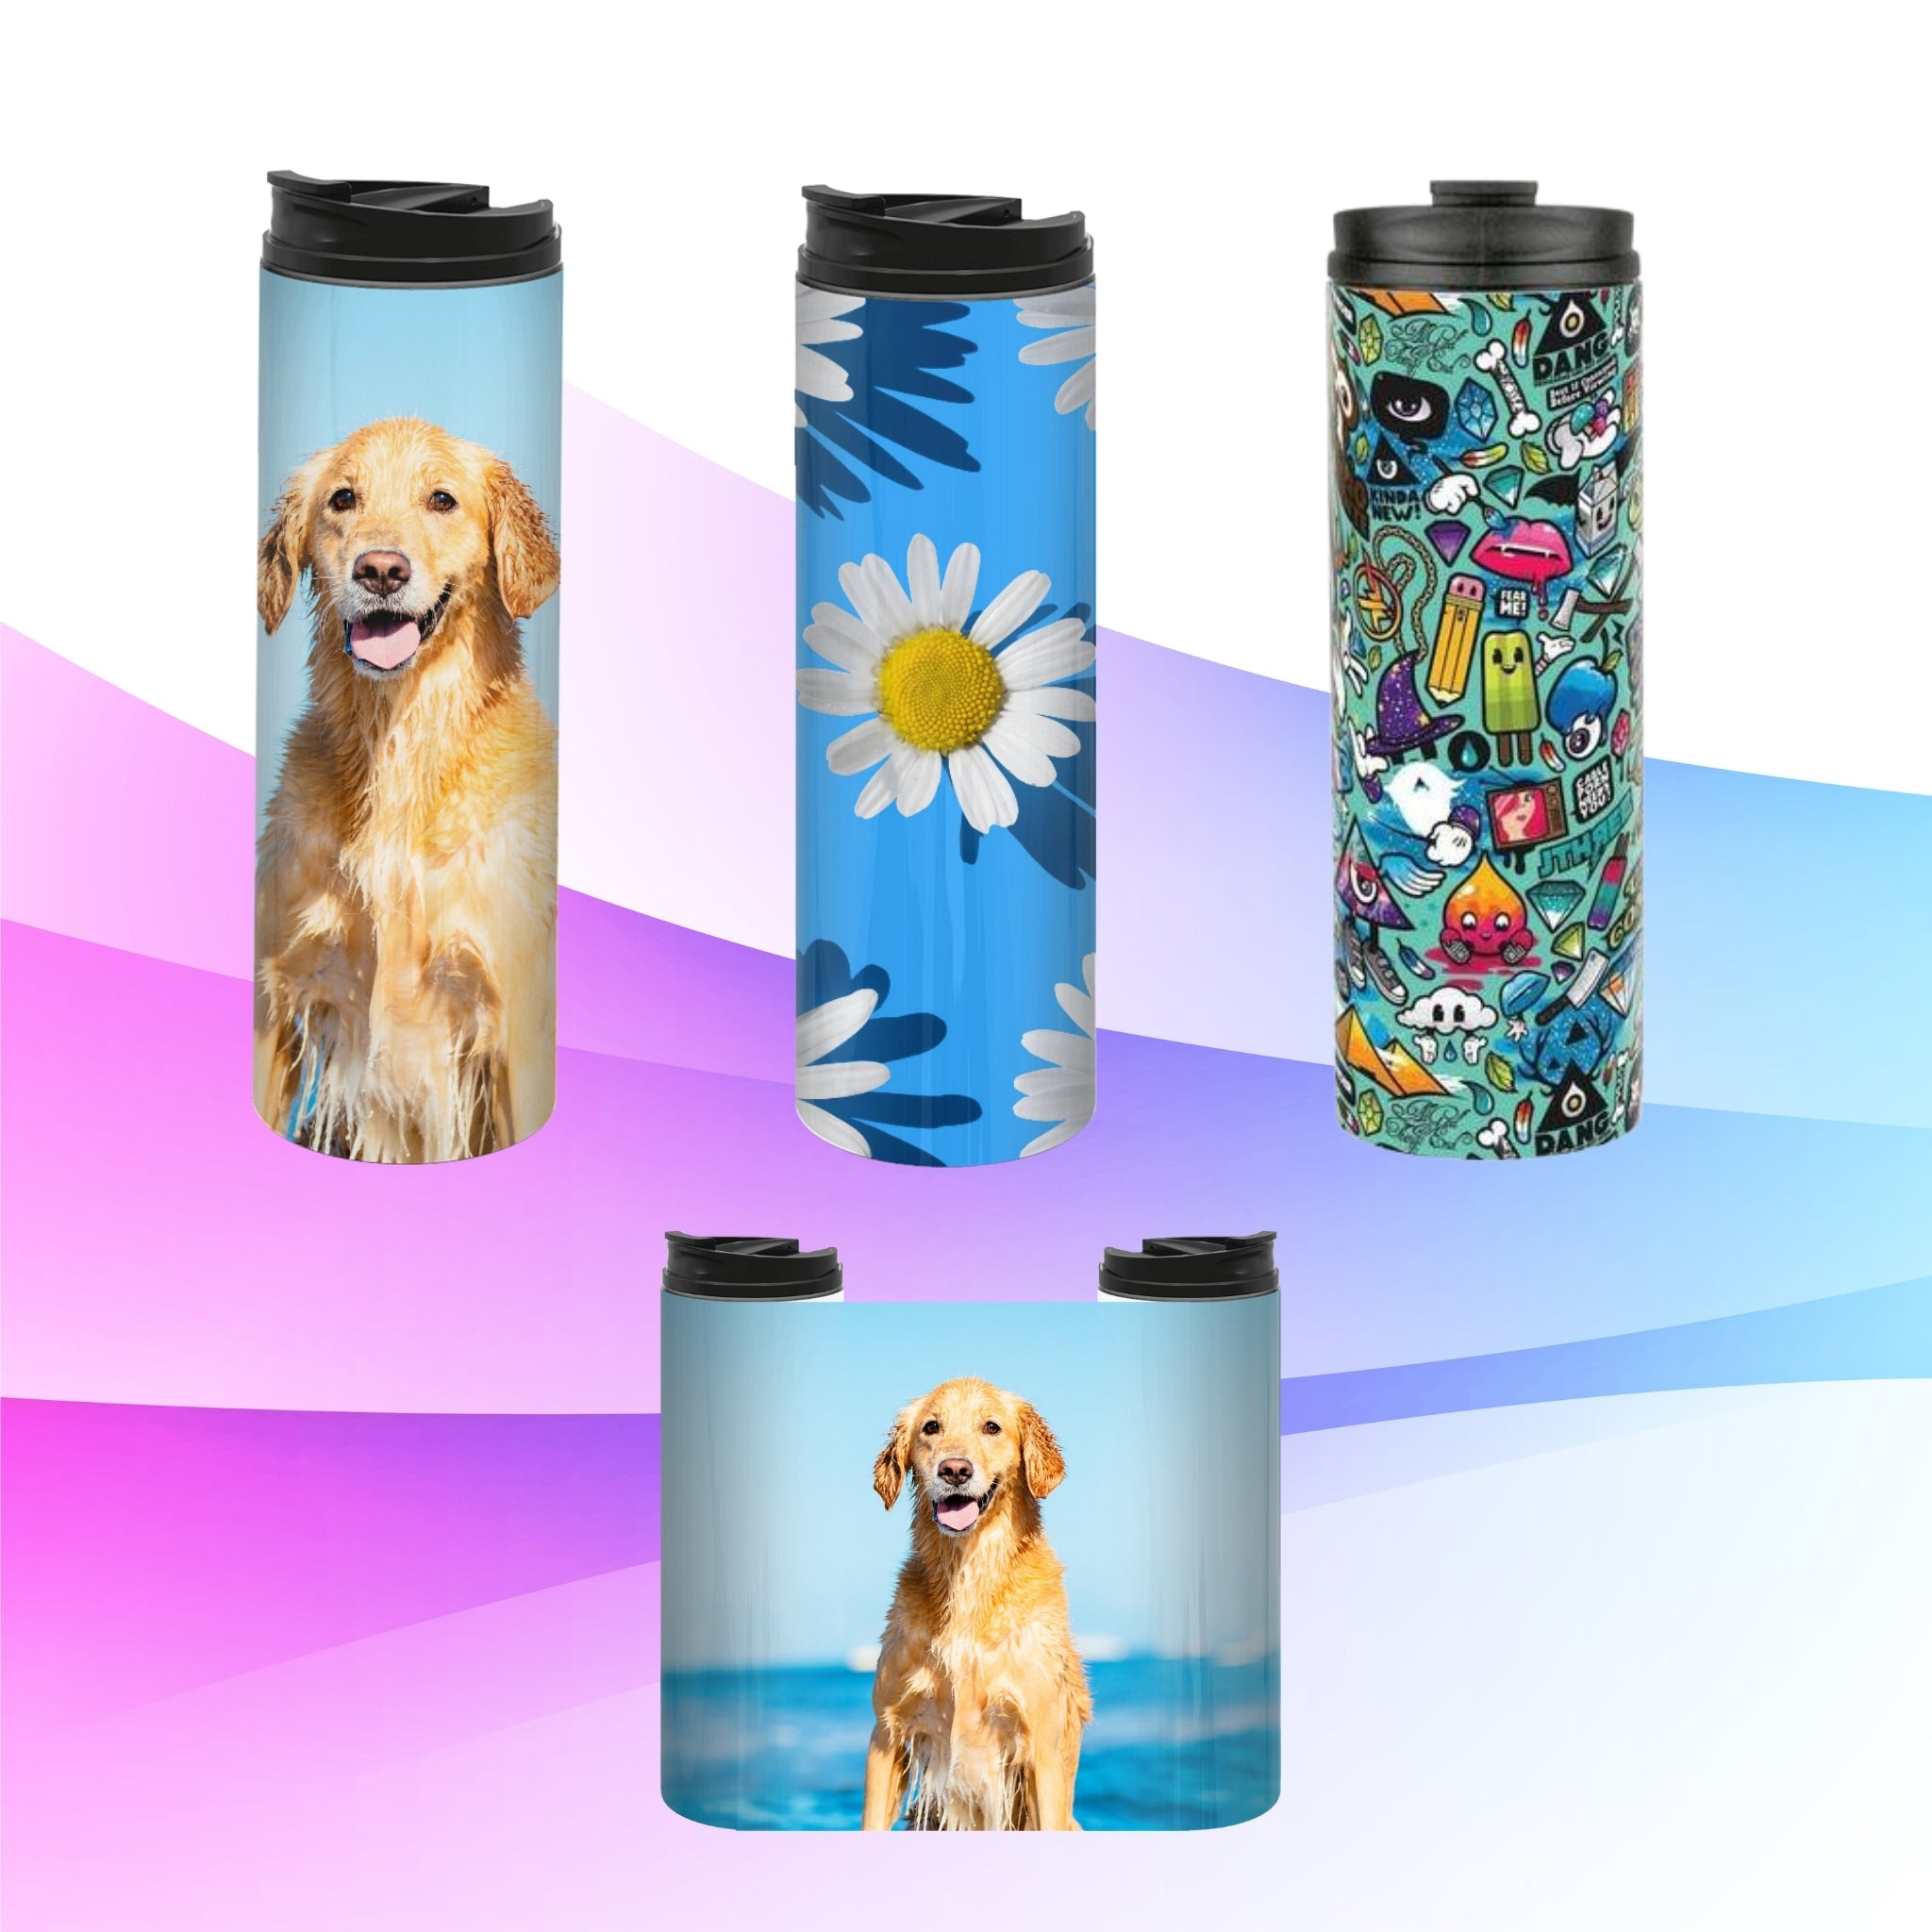 All Over Print Stainless Steel Drink Bottle (16oz) I Customized Bottles at designairpods.com